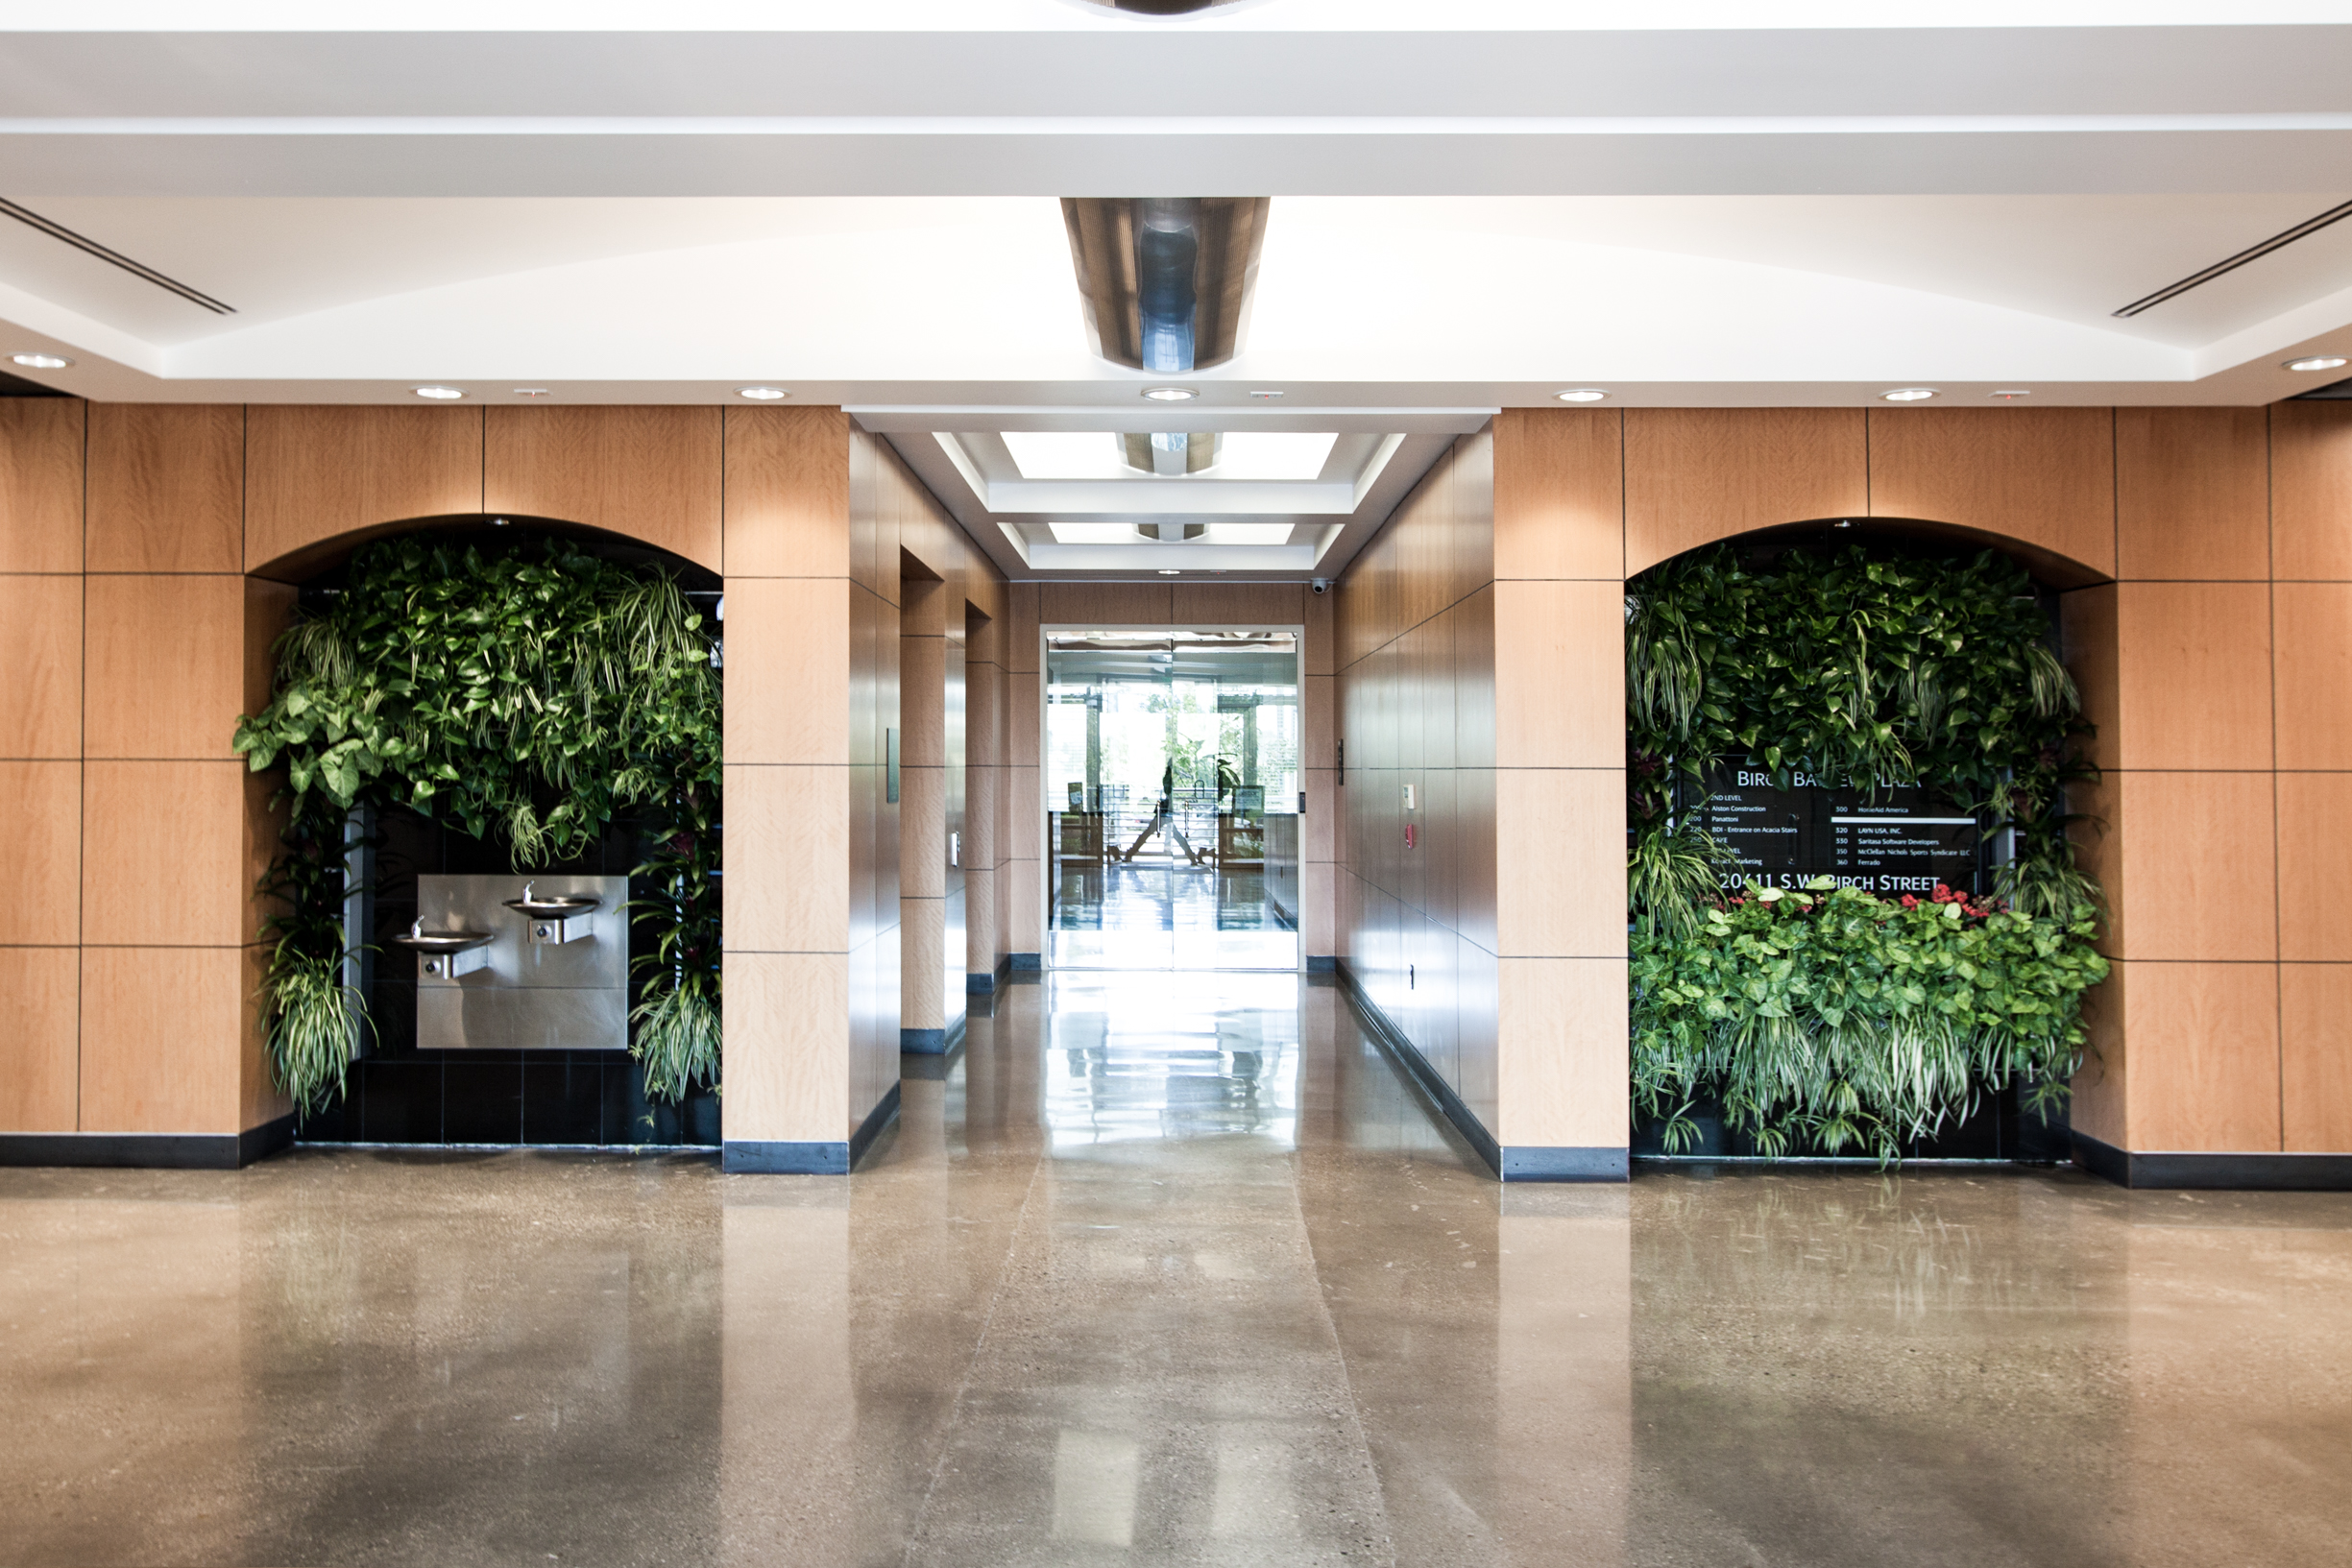 Newport Office complex lobby natural light and plants